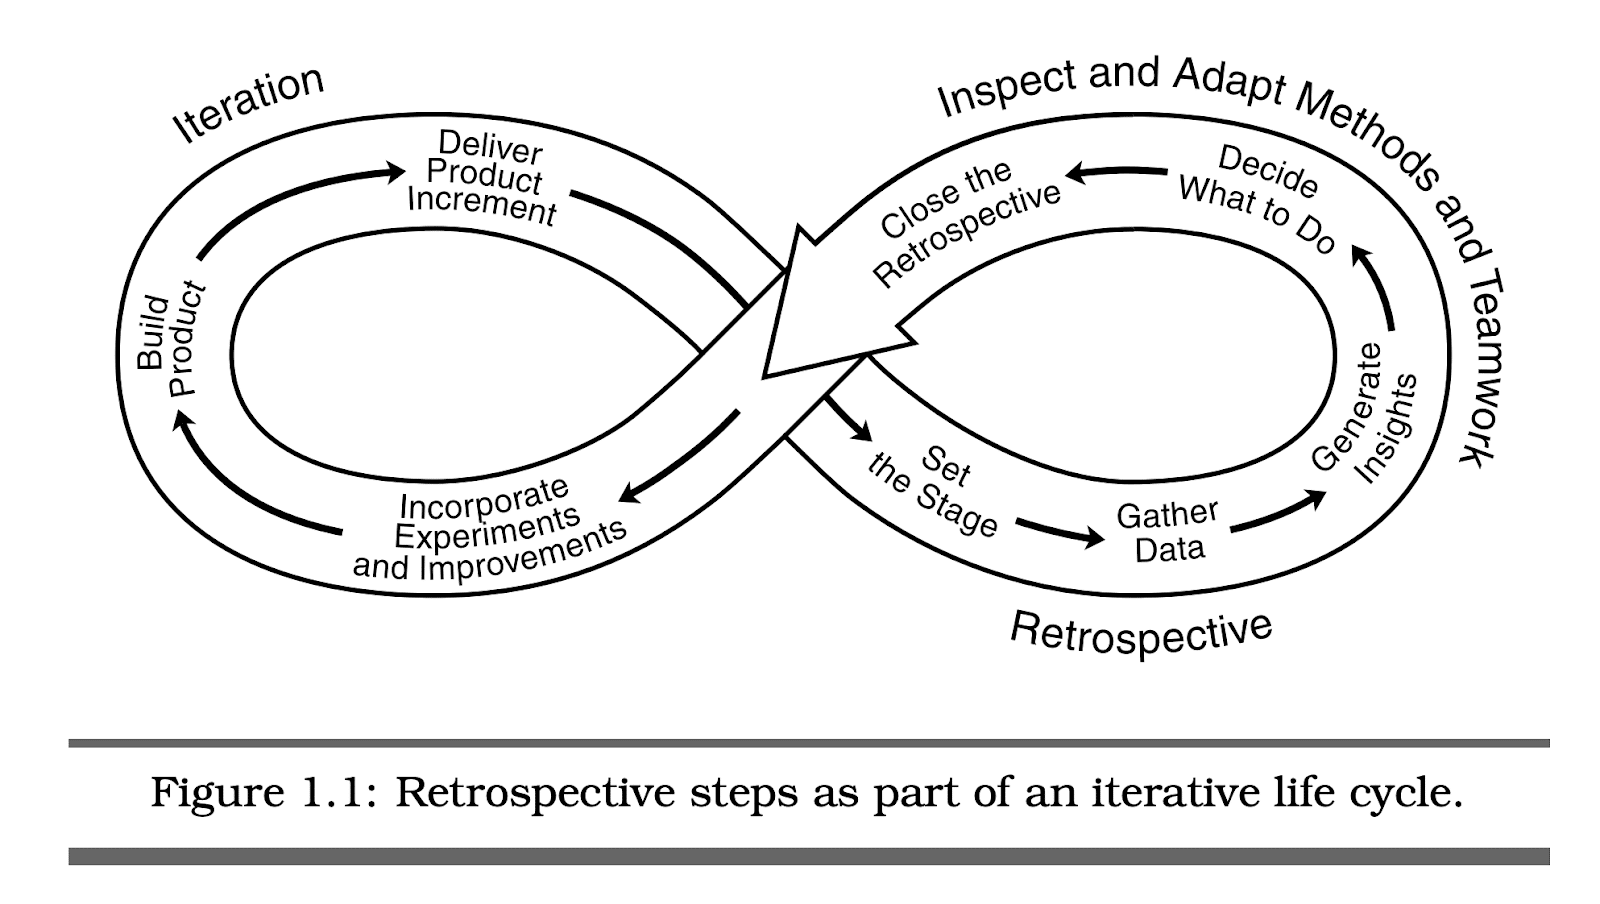 Figure 1.1: Retrospective steps as part of an iterative life cycle